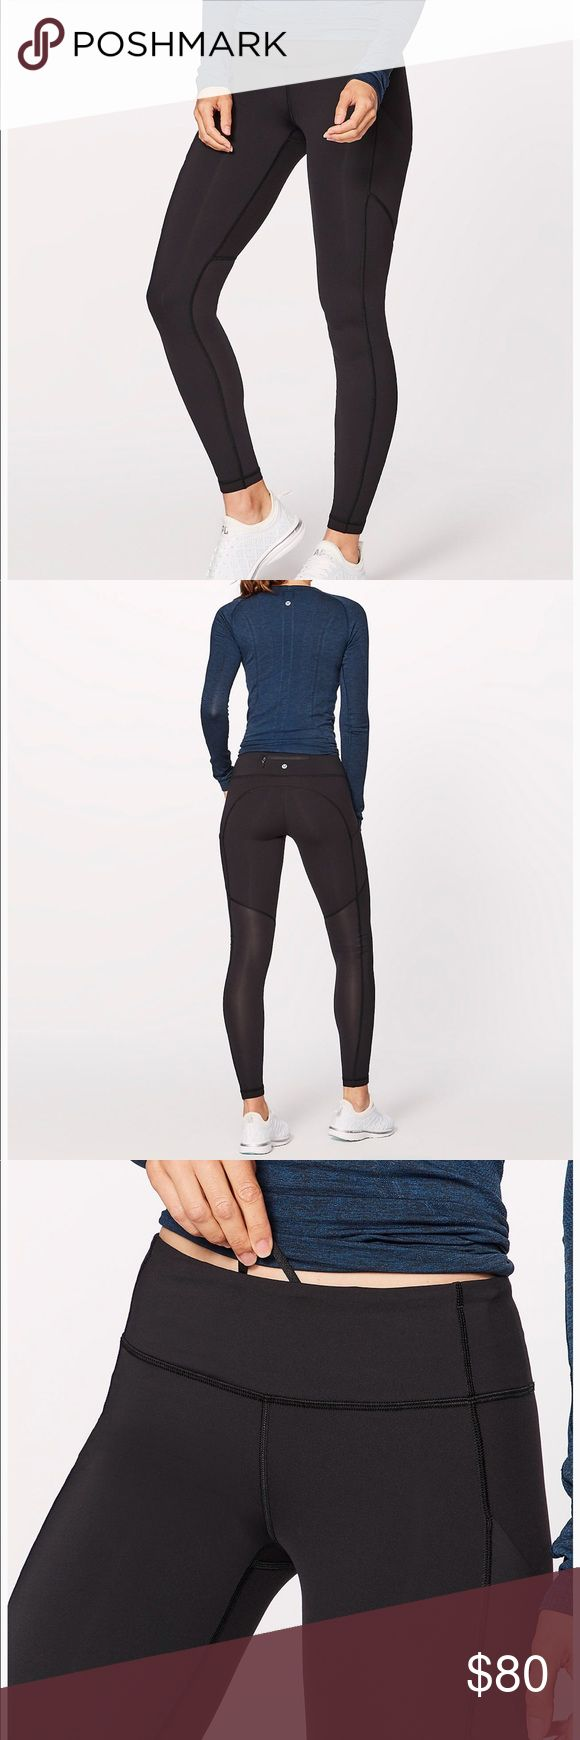 NWOT: Speed Tight V You've got a need for speed. The fifth iteration of our classic run tight features lightening-fast design lines and enough pockets to hold your gels, cards, and phone. No extra bells and whistles, just a pair of really great run tights. NOTE: UNWORN. Please only reasonable offers ONLY. lululemon athletica Pants Leggings